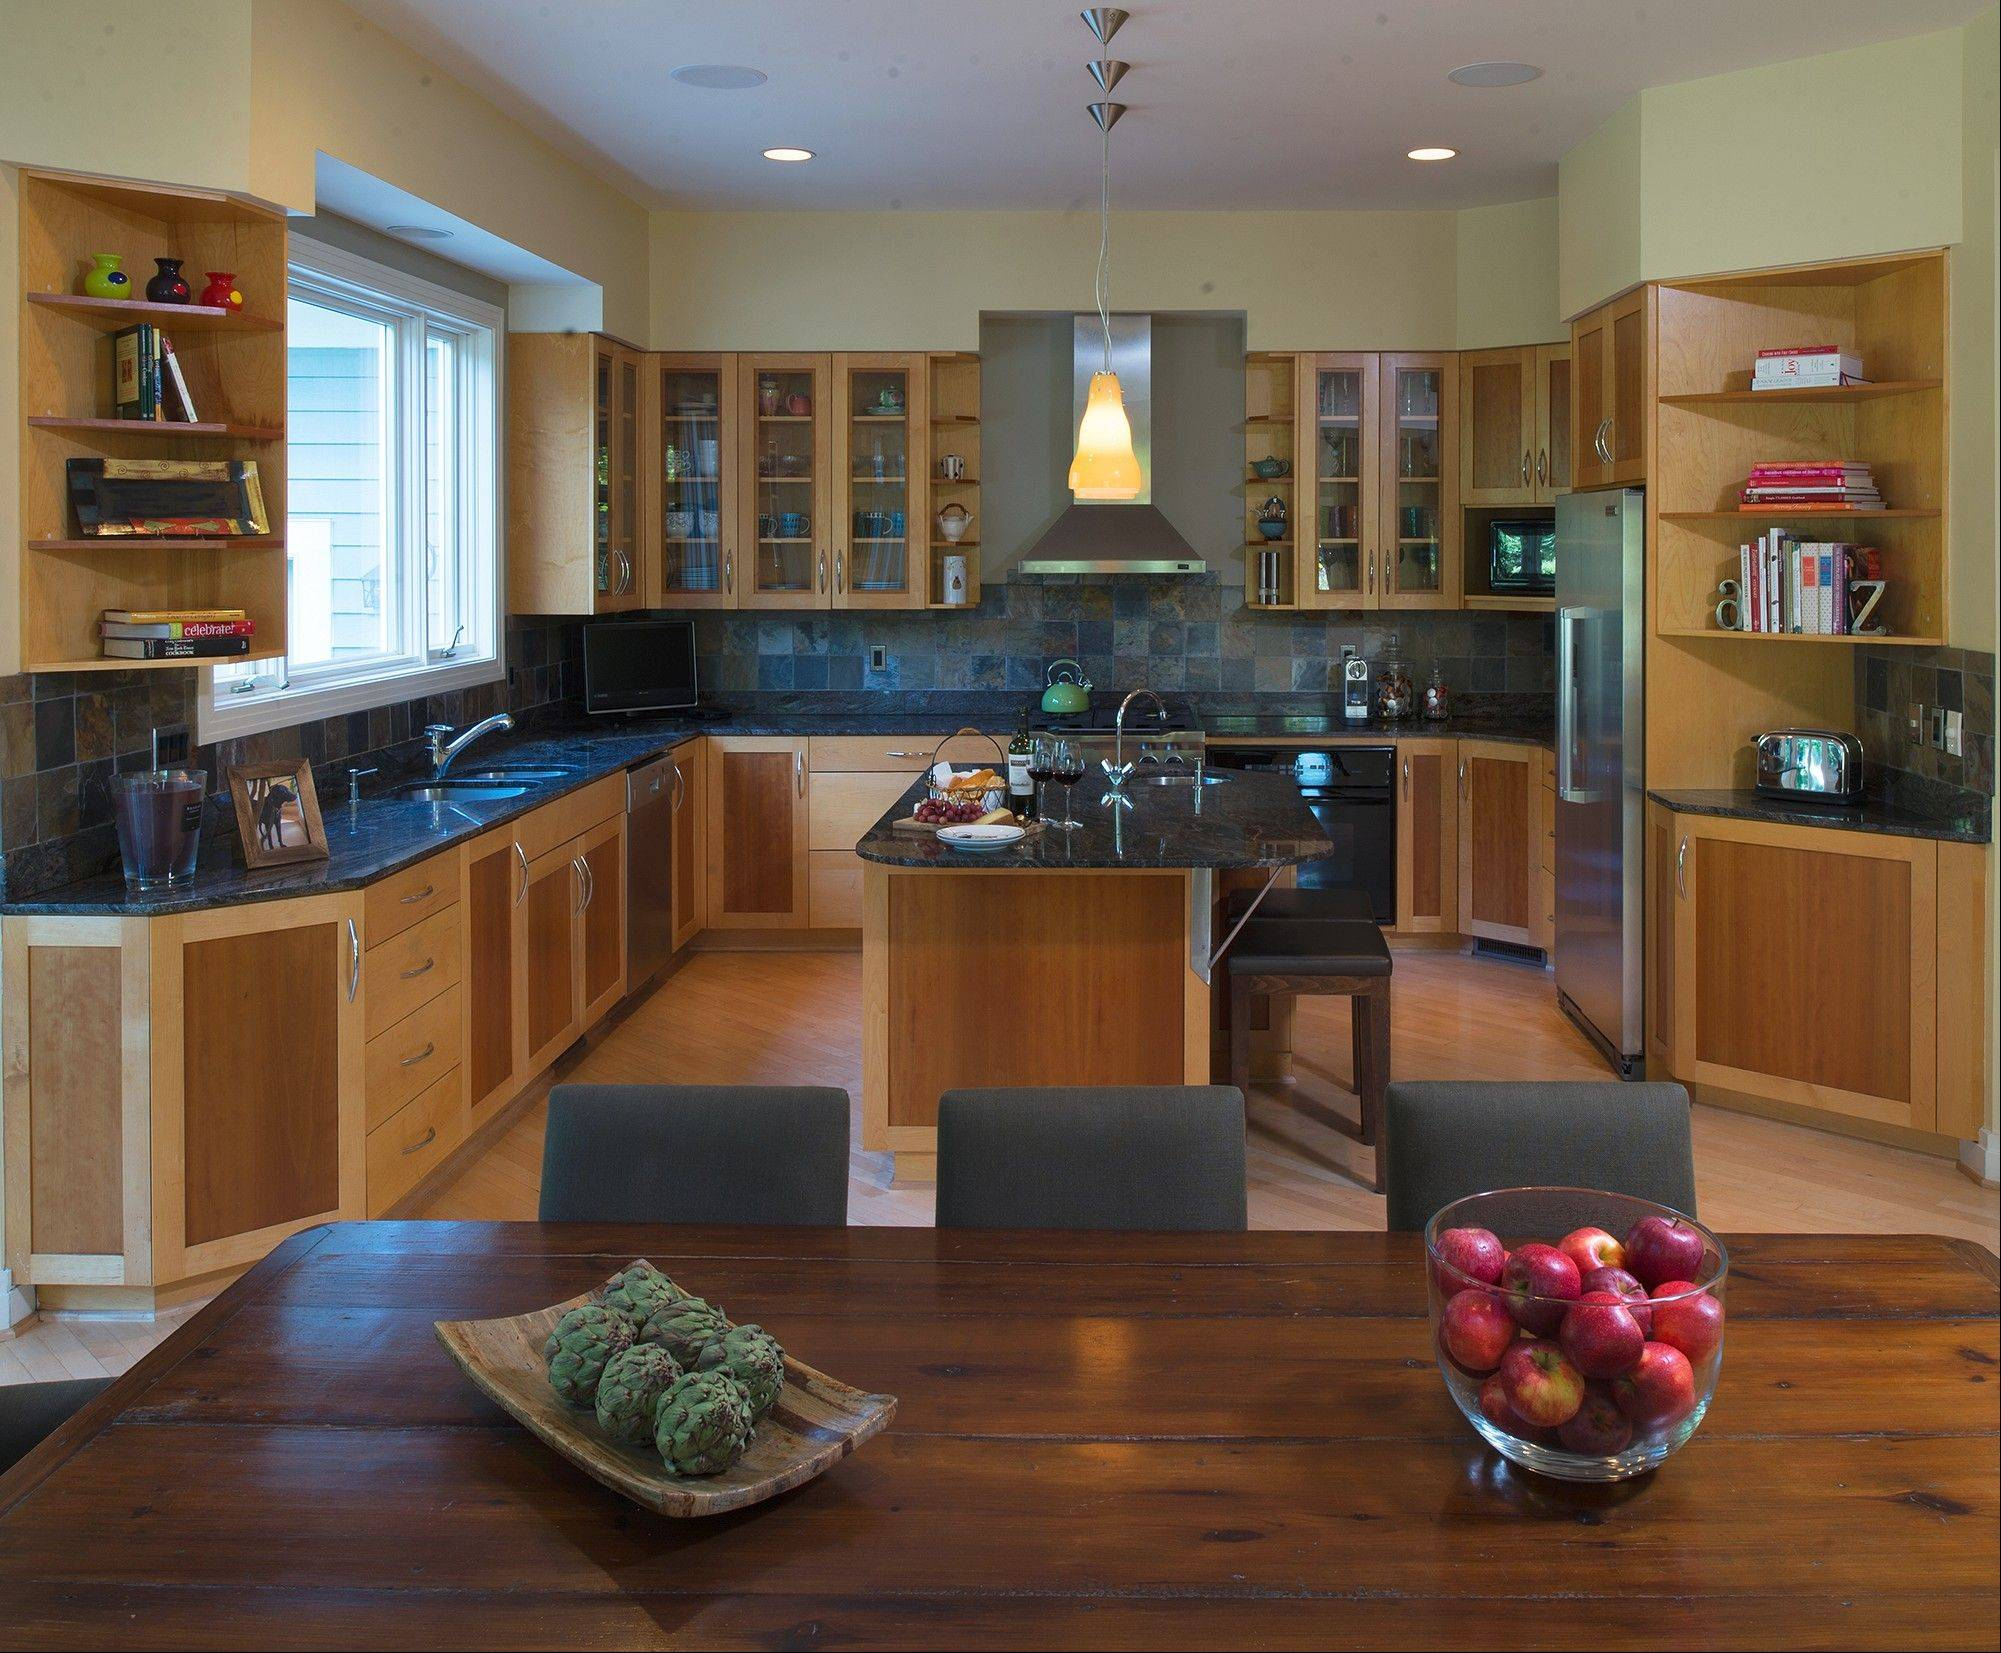 The Baker kitchen features dozens of maple cabinets with cherry veneer inserts and a center island with space for seating.